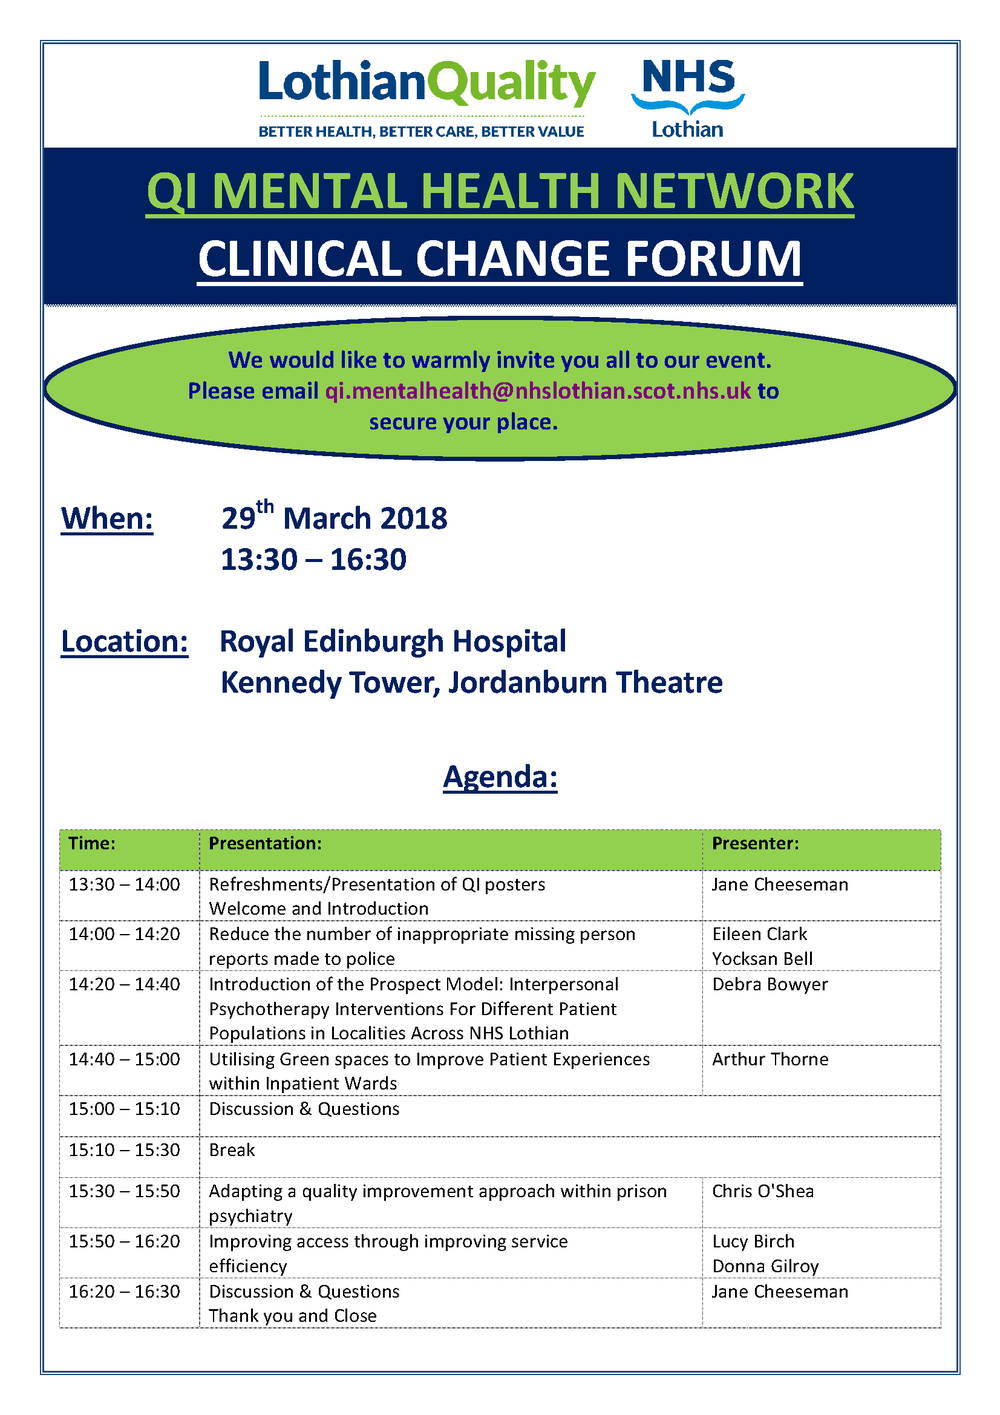 CCF Agenda_March 2018.png